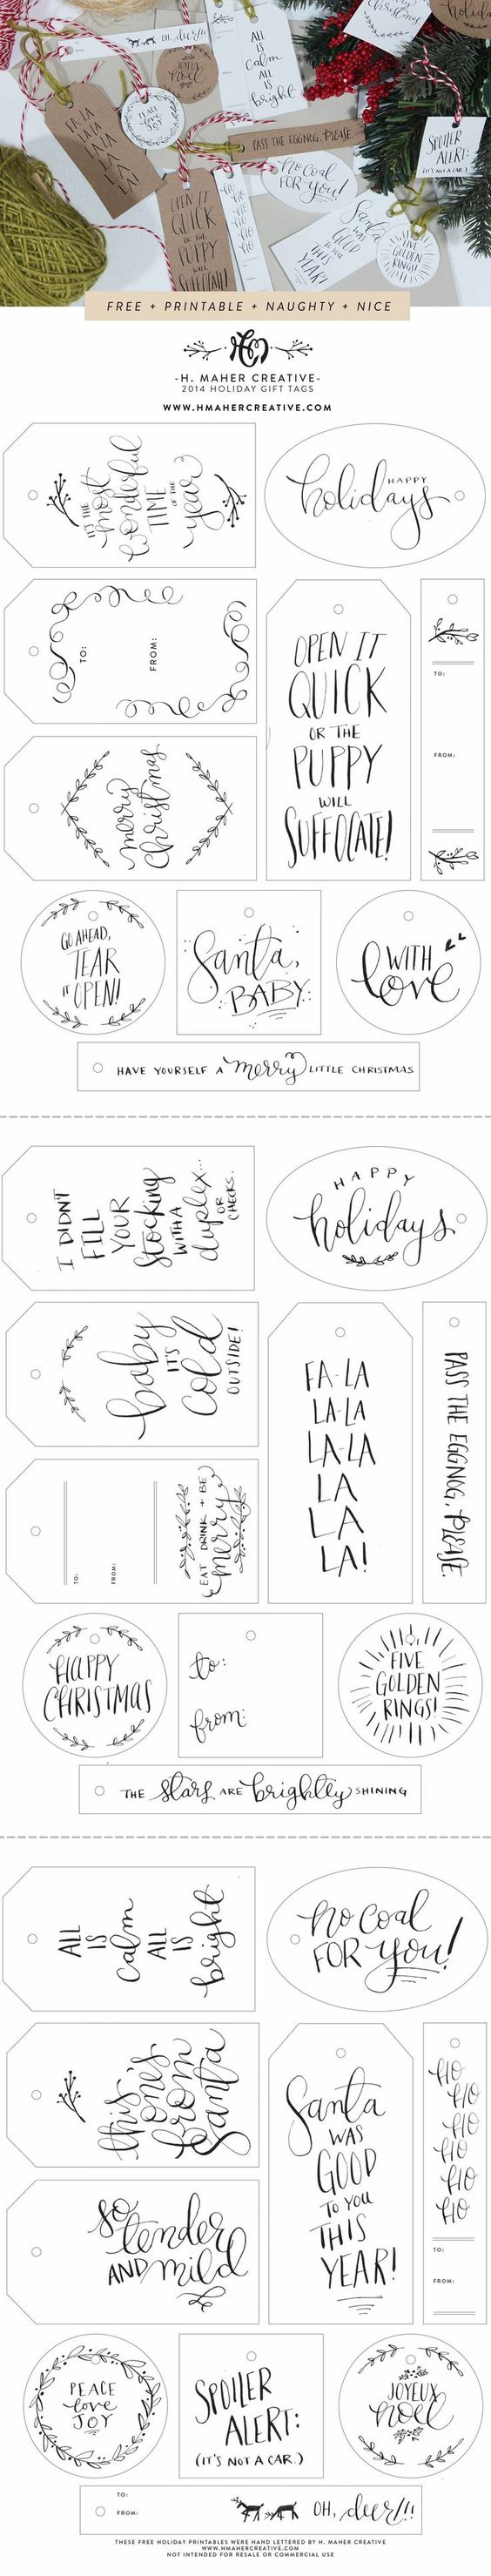 Naughty + Nice // 30 Free Hand-Lettered Holiday Gift Tag Printables from H. Maher Creative (www.hmahercreative.com) hand lettering // calligraphy // diy // holiday // christmas // gift wrap // hanging tags // funny // cute // illustrated: